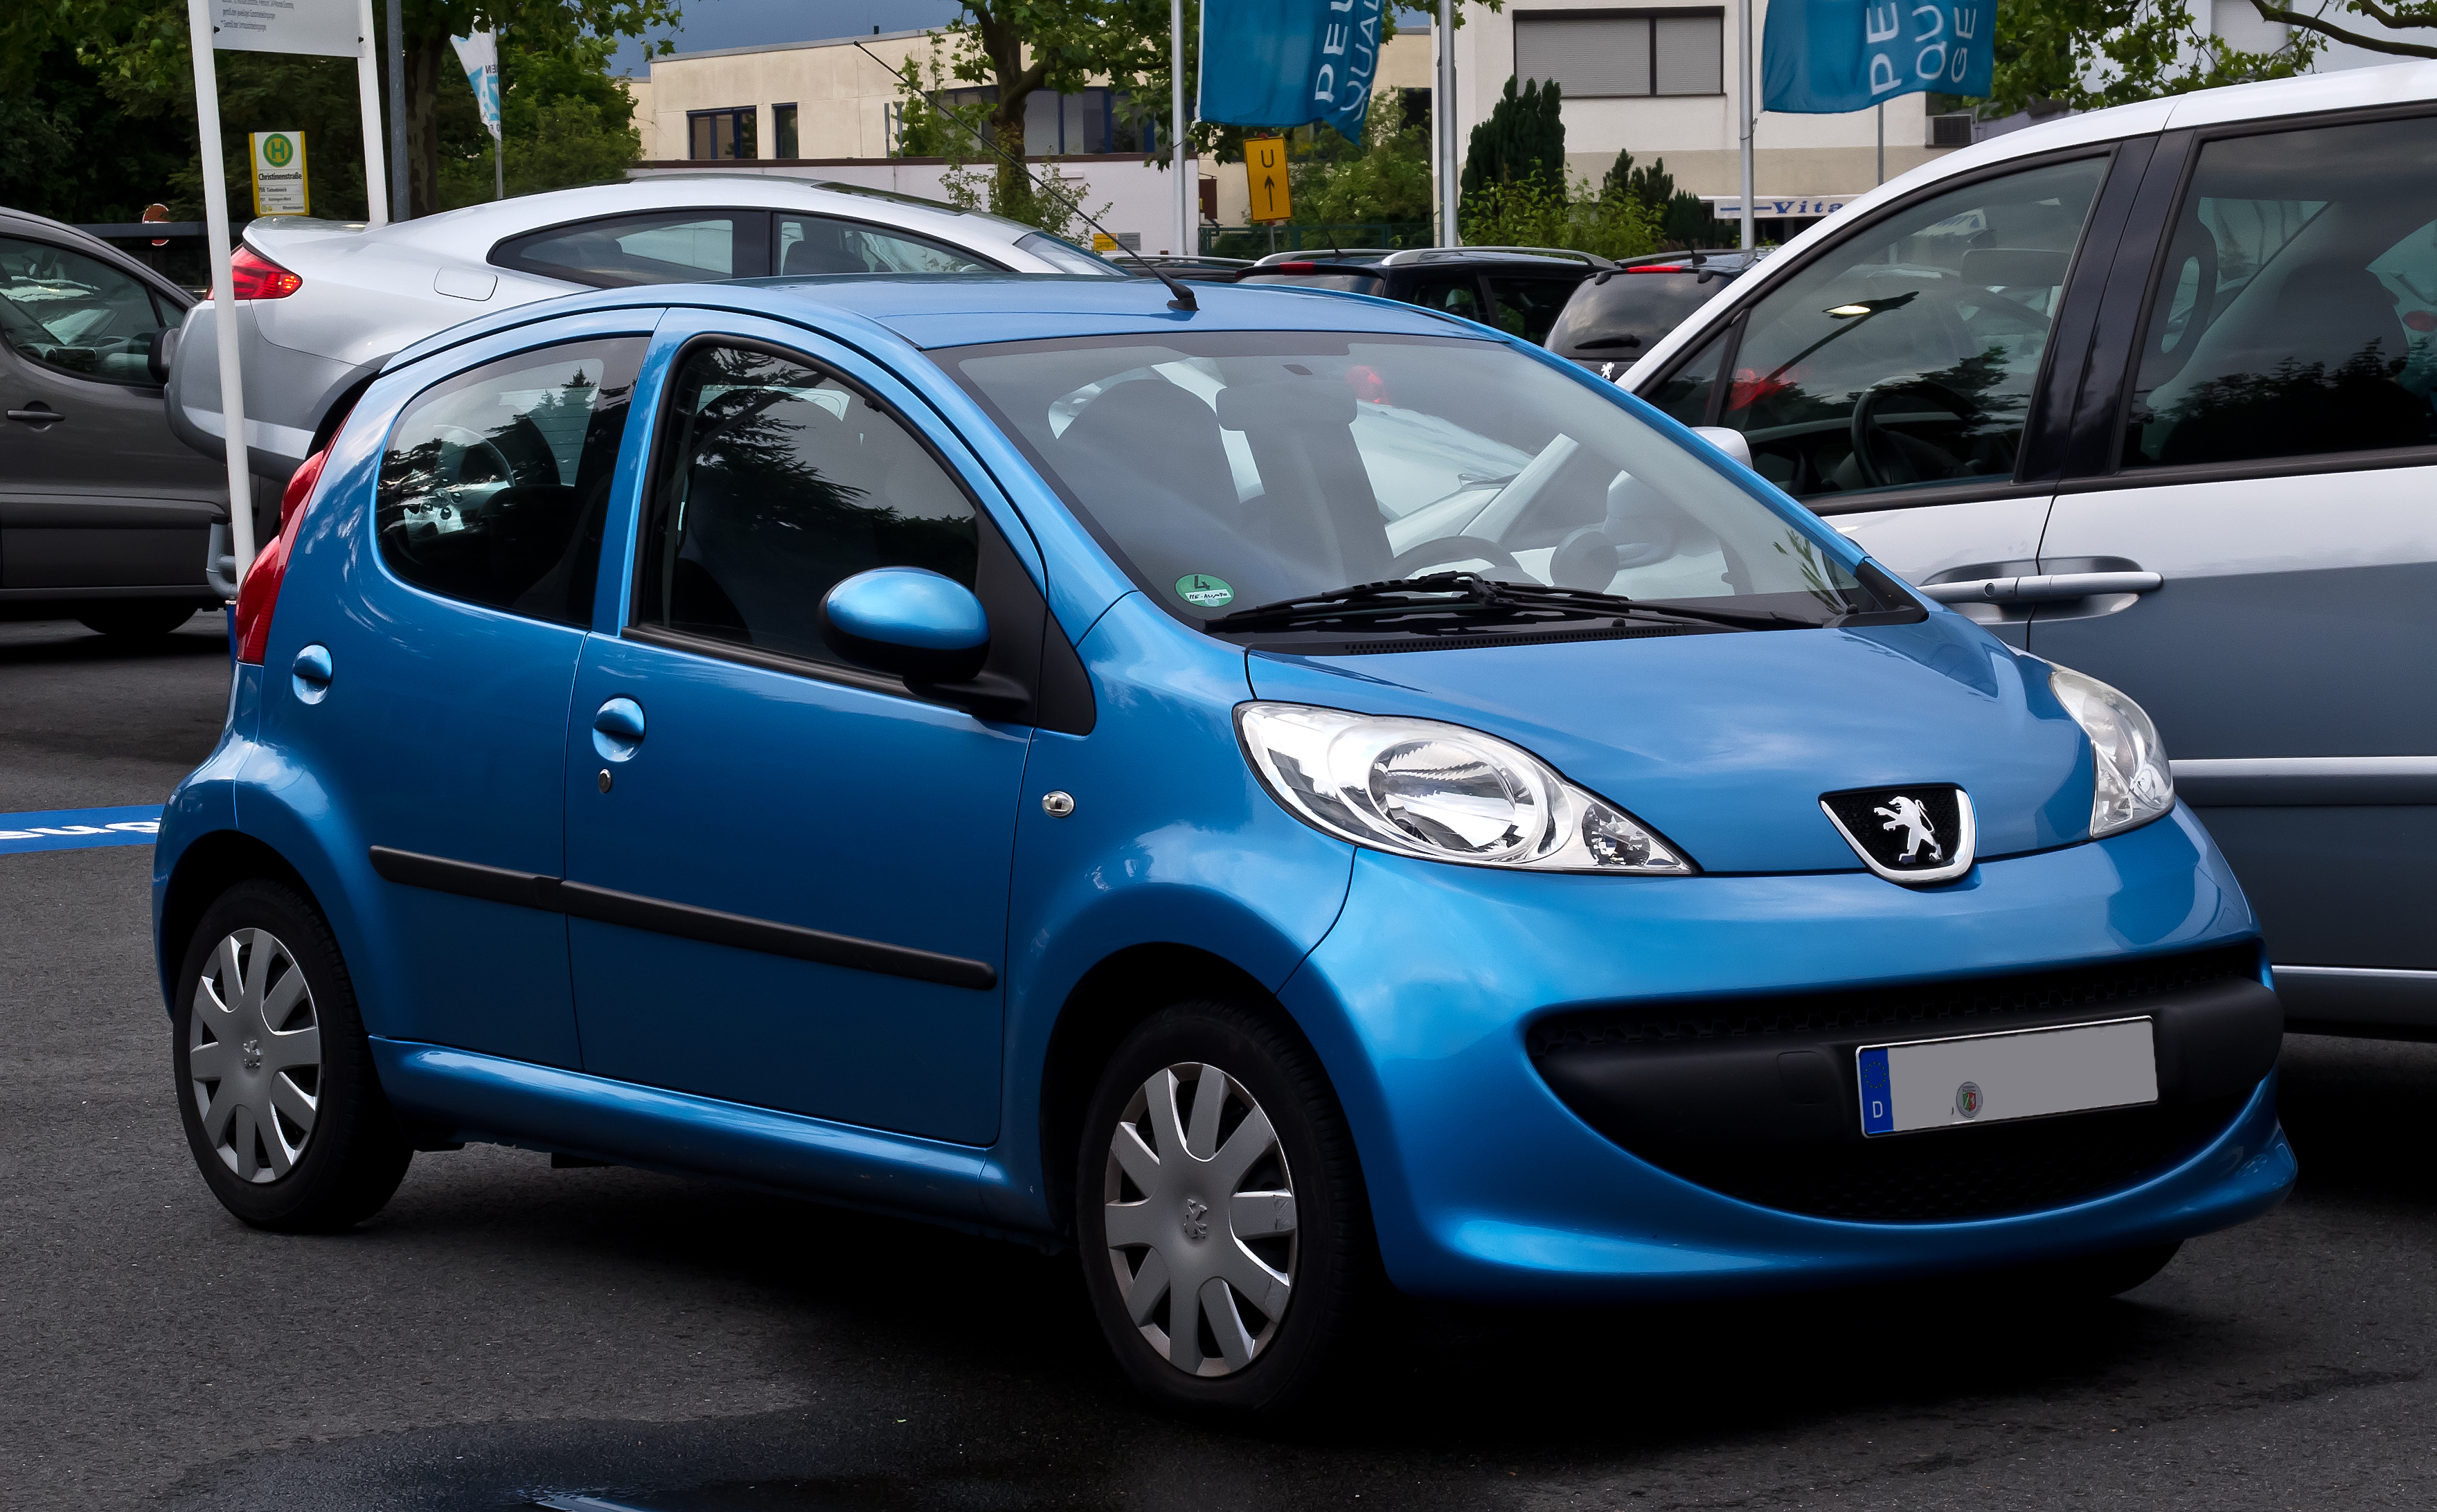 2012 Peugeot 107 Photos, Informations, Articles